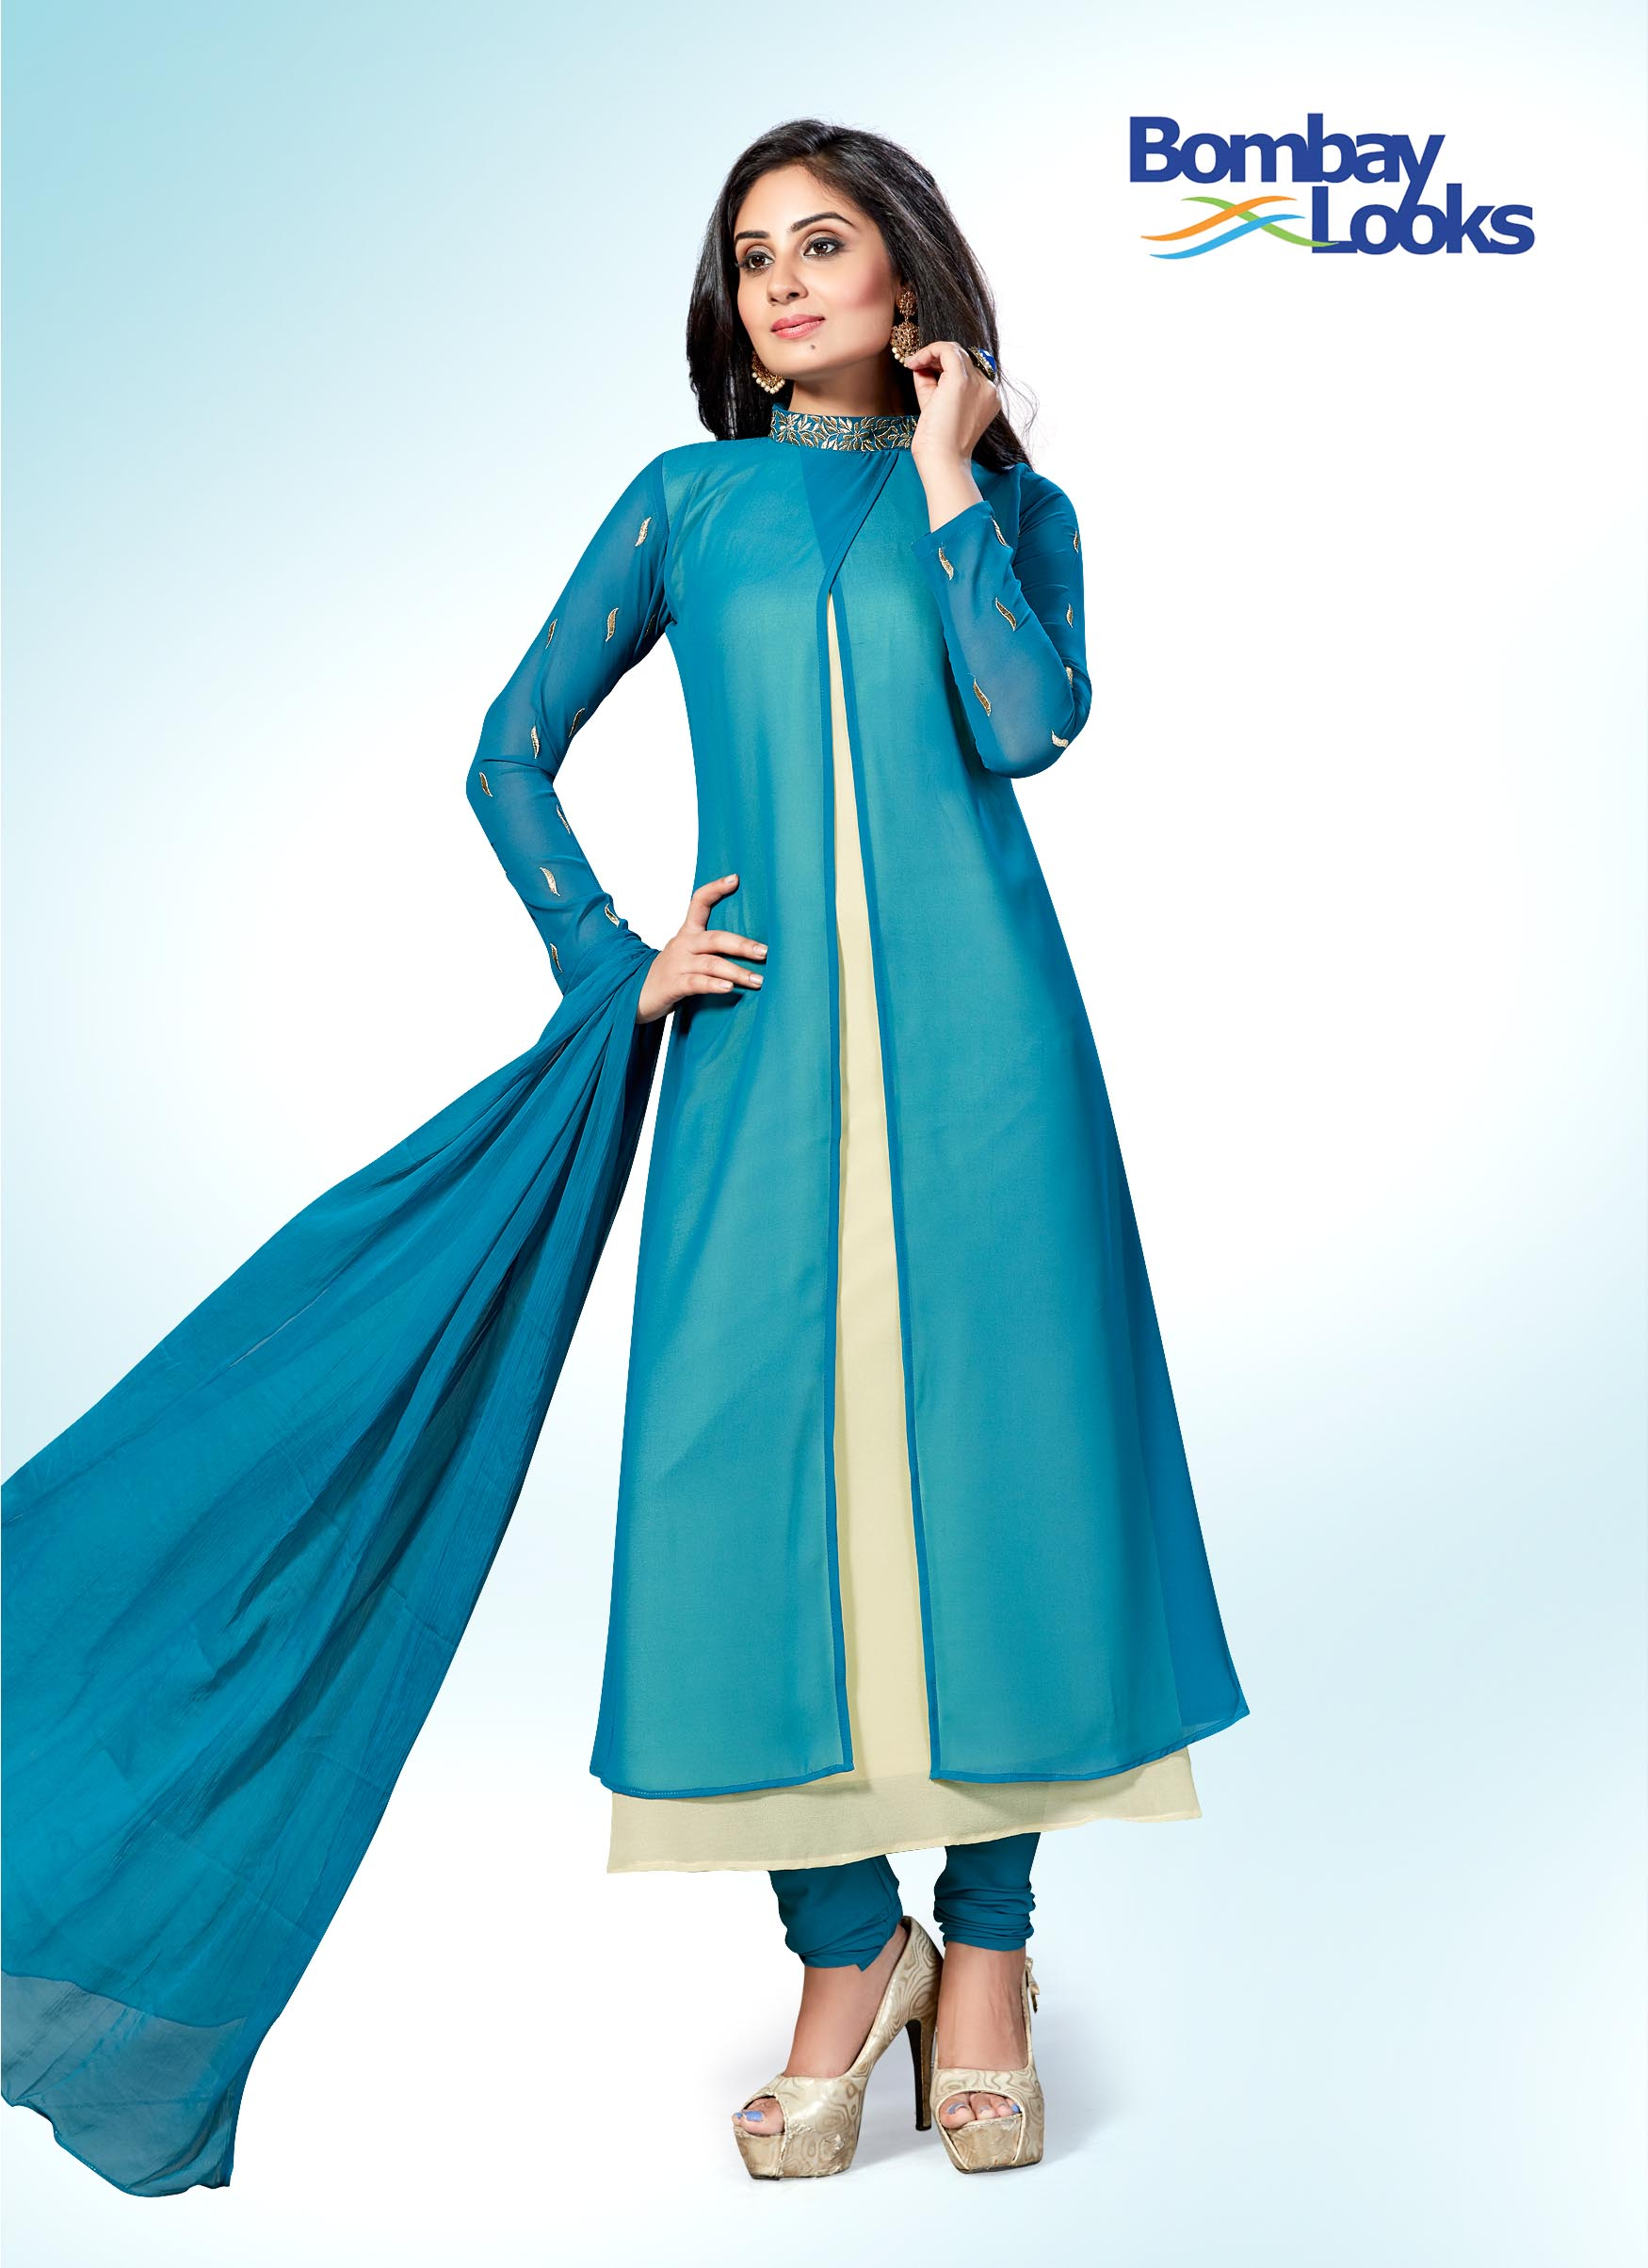 Dual coloured churidar suit in jade blue and gold